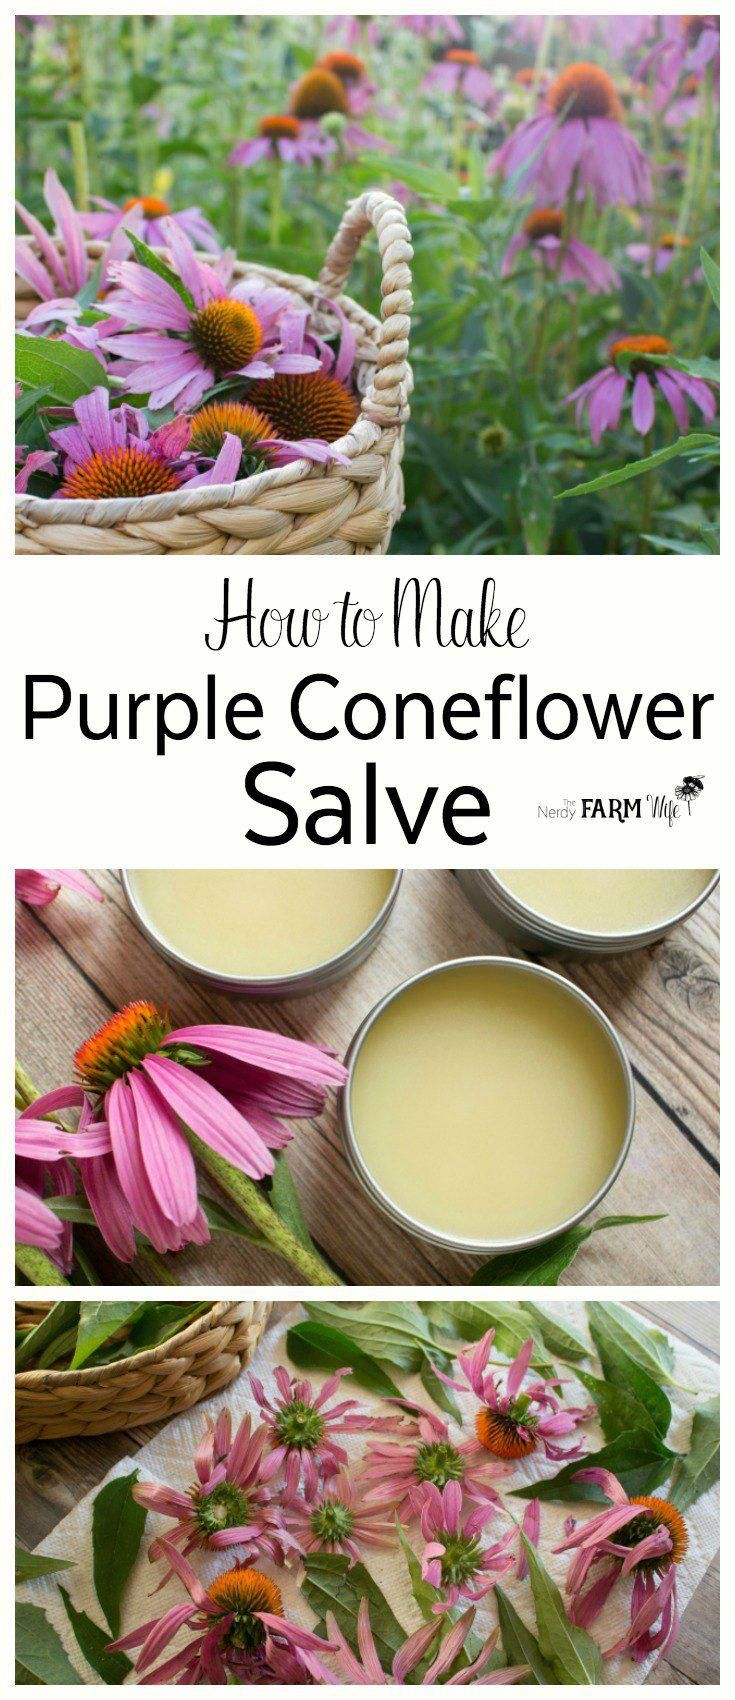 How to Make Echinacea (Purple Coneflower) Oil & Salve in